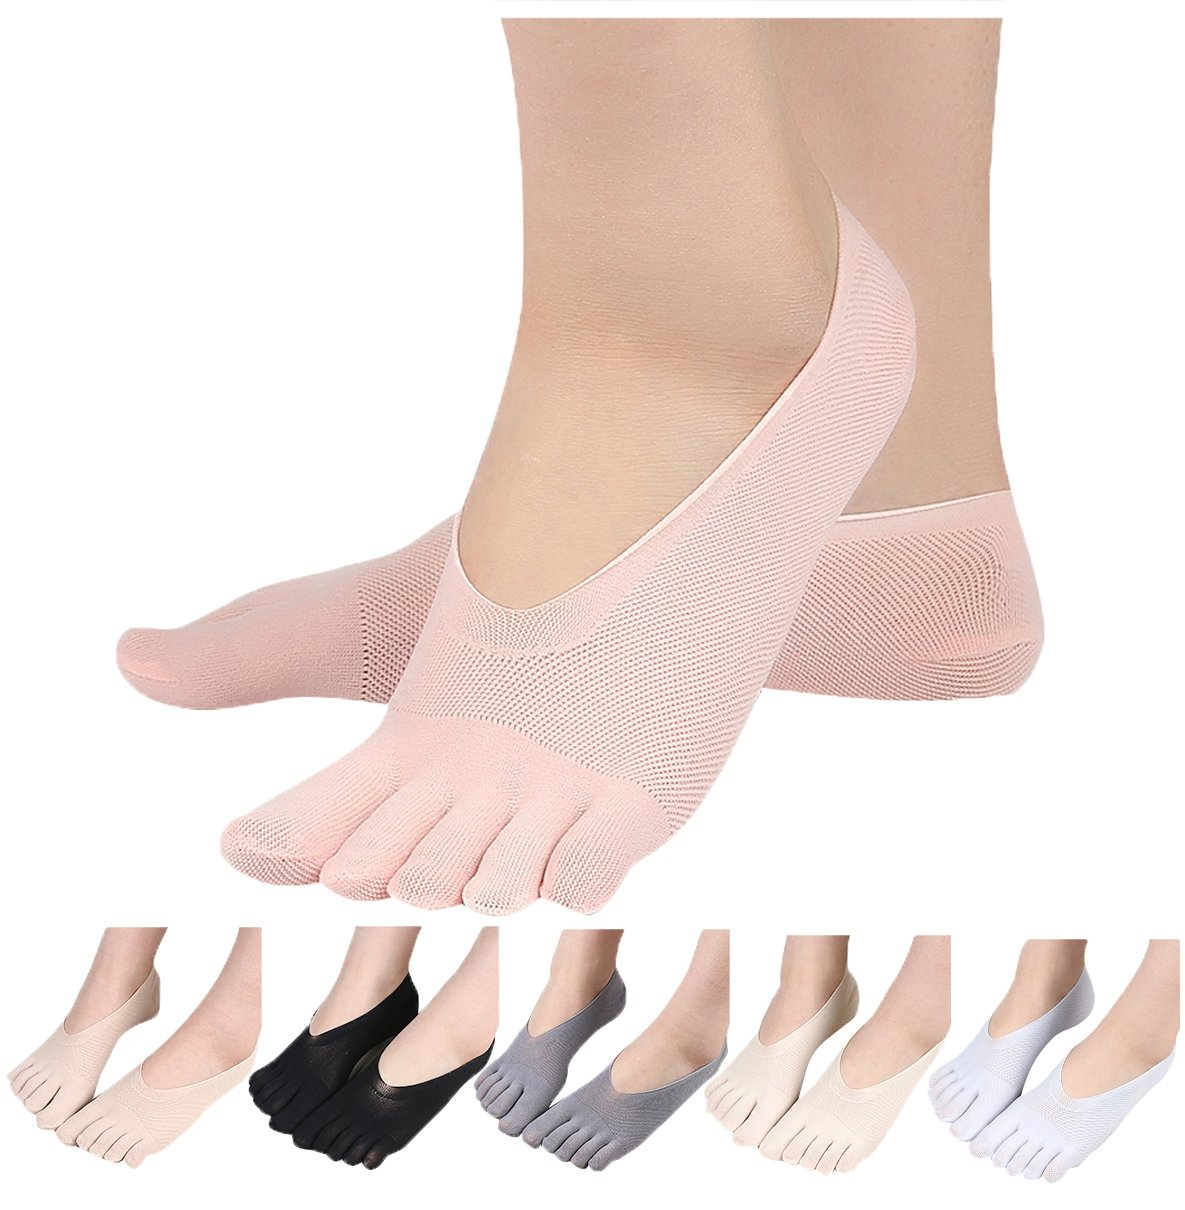 HONOW Women's No Show Toe Socks Invisible Liner Summer Casual (Pack of 6), Style 5